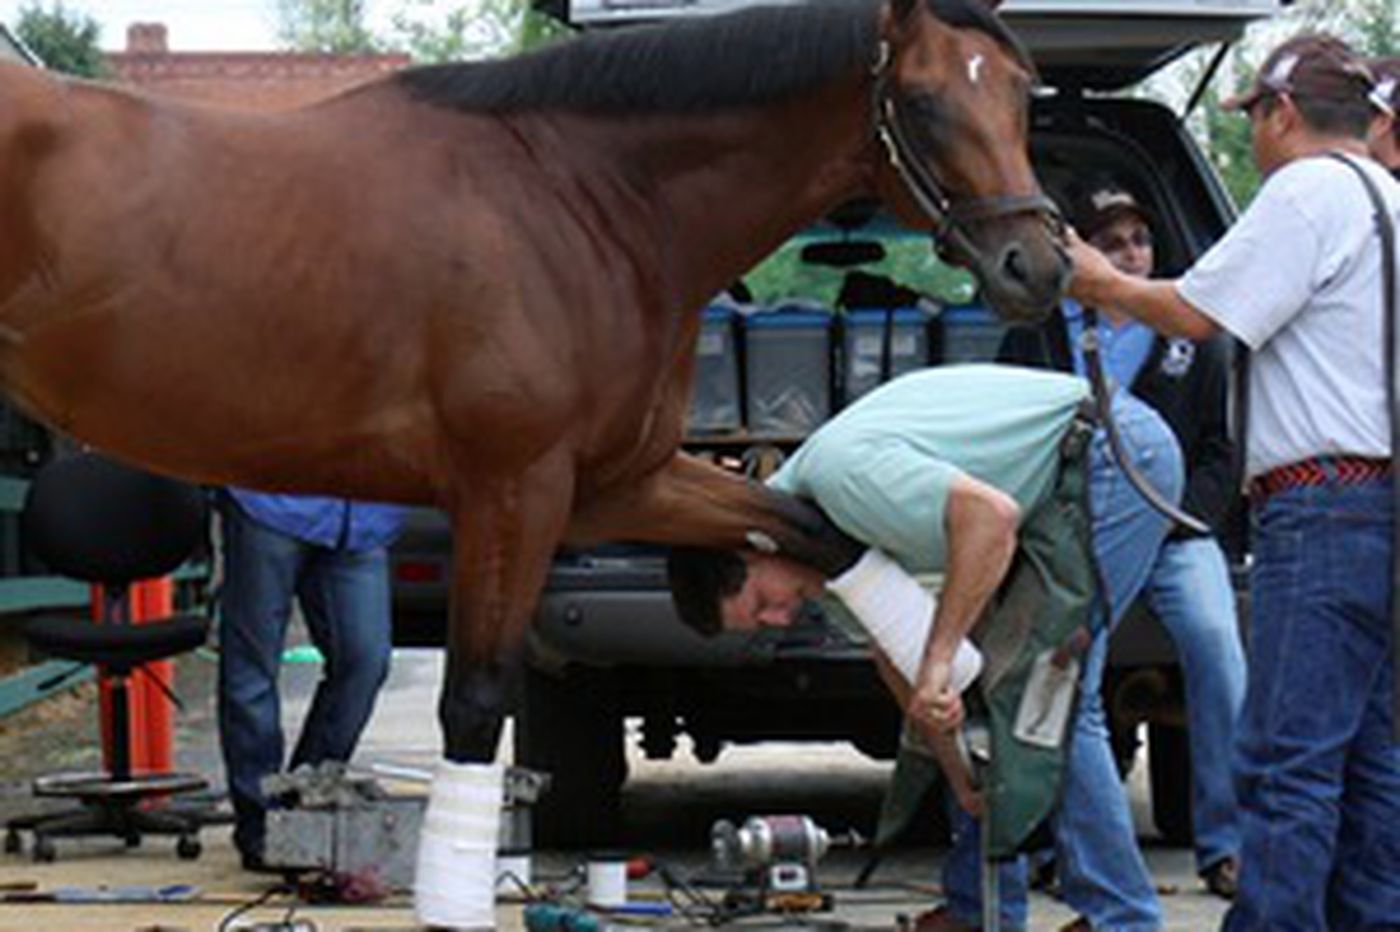 Racing's credibility riding on injury-free Preakness